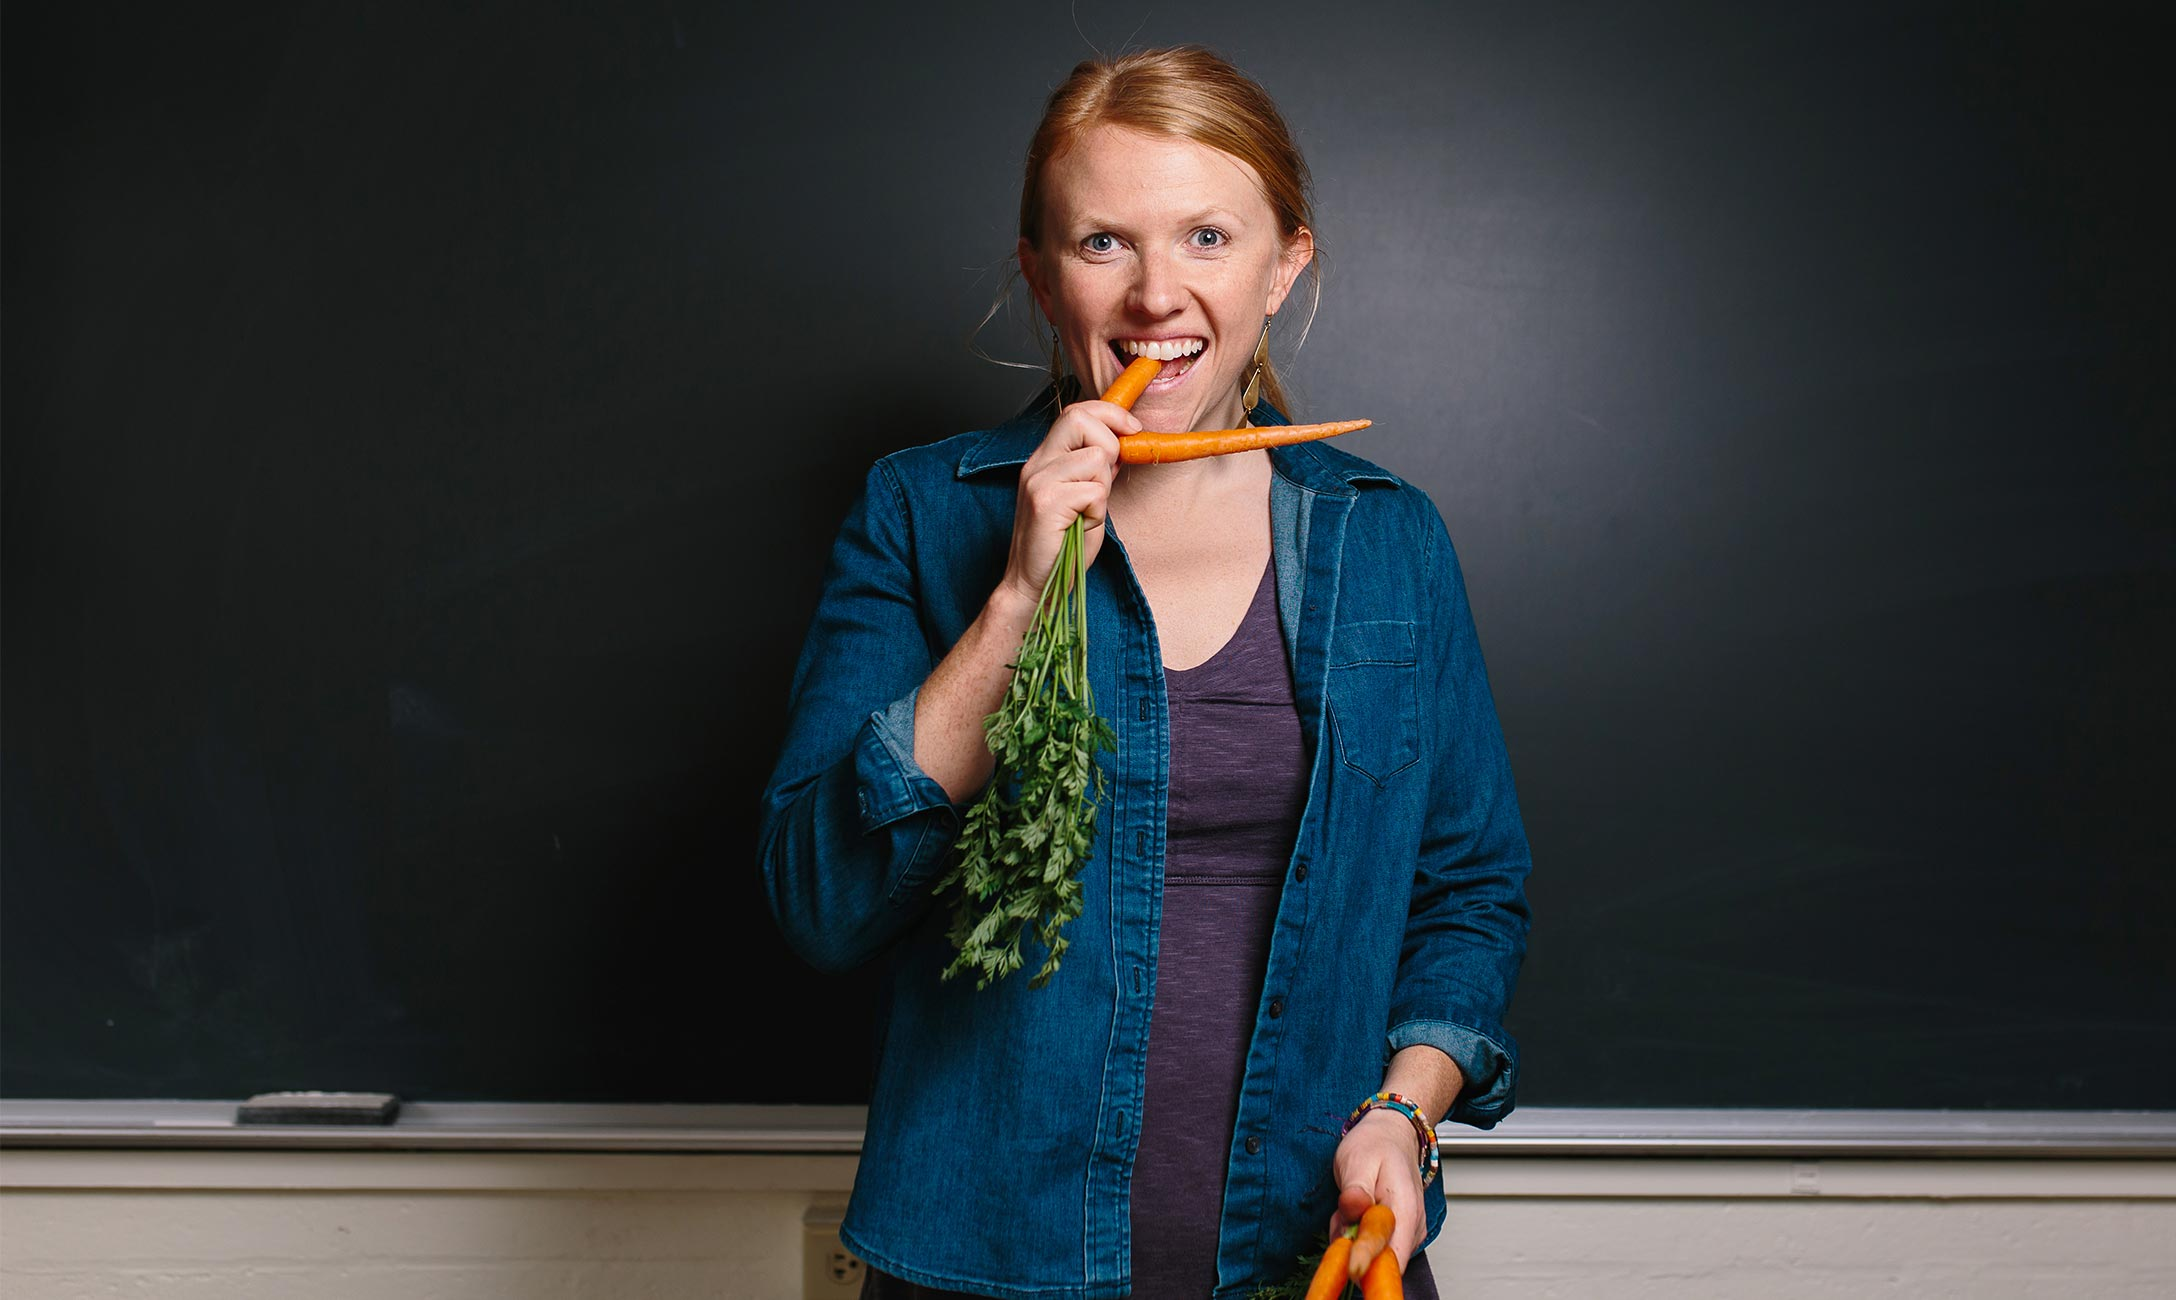 Person in blue jacket standing in classroom eating carrots.